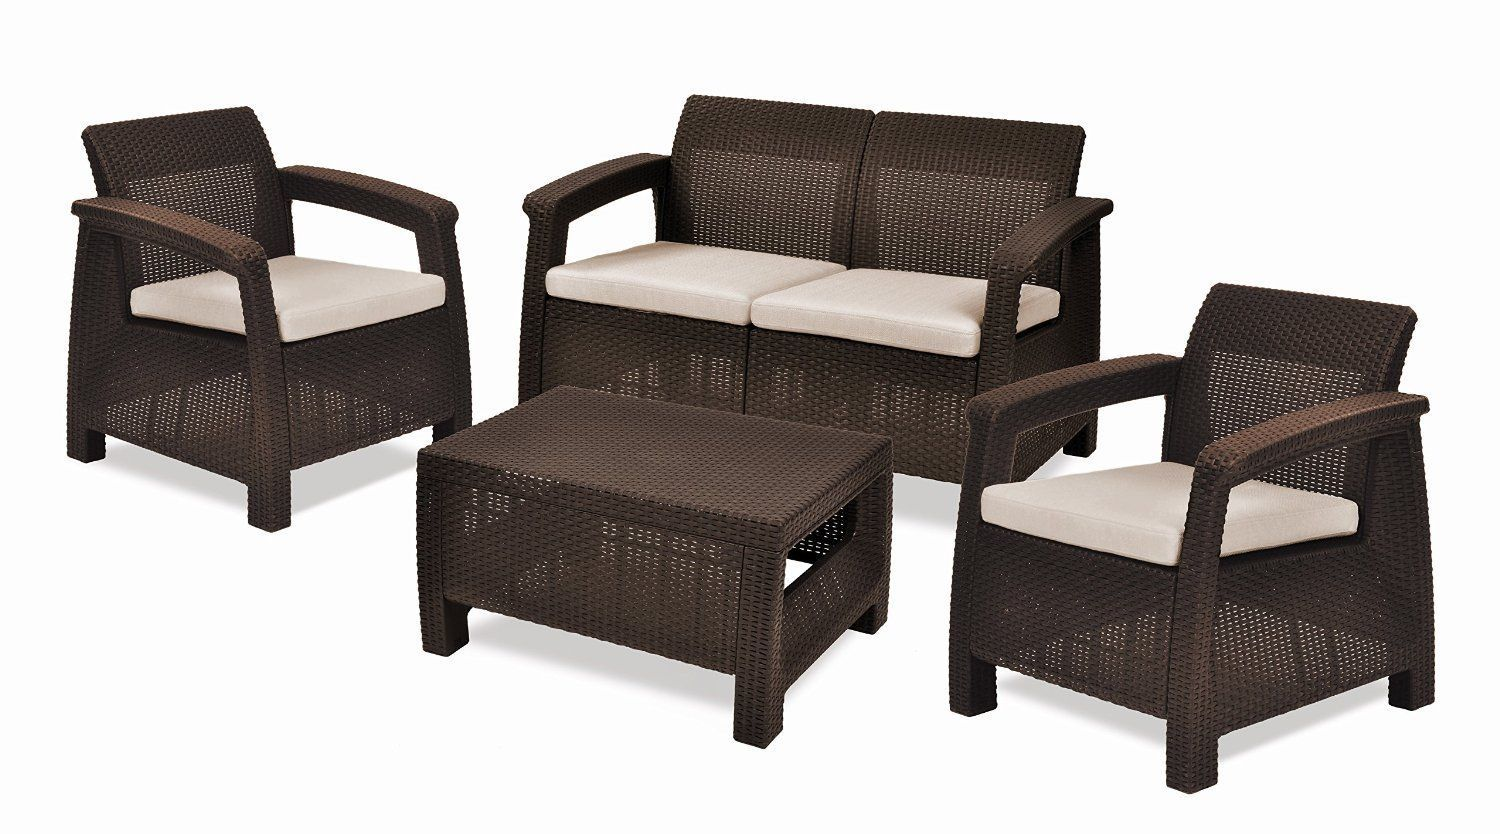 Keter Corfu Outdoor Furniture Complete 4pc Set Pool. Porch Furniture Wood Crossword. Lazy Boy Patio Furniture Kmart. Home Zone Outdoor Furniture. Patio Table And Chairs With Parasol. Outdoor Furniture Floor Plans. Wooden Patio Furniture Uk. All Weather Wicker Patio Furniture Sectional Set. Homemade Sectional Patio Furniture